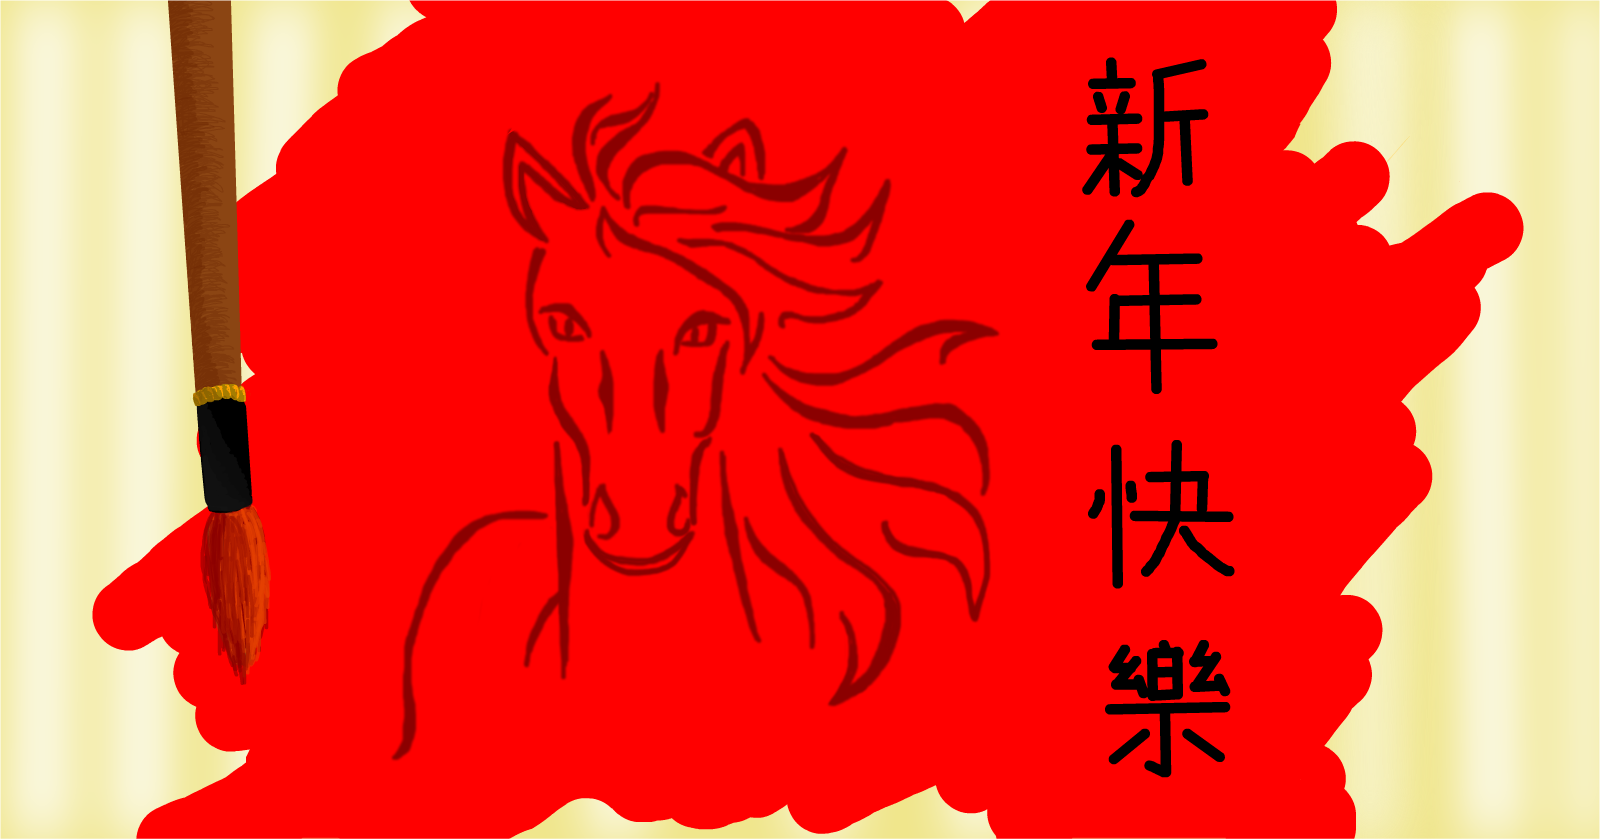 happy chinese new year - Happy Chinese New Year In Mandarin